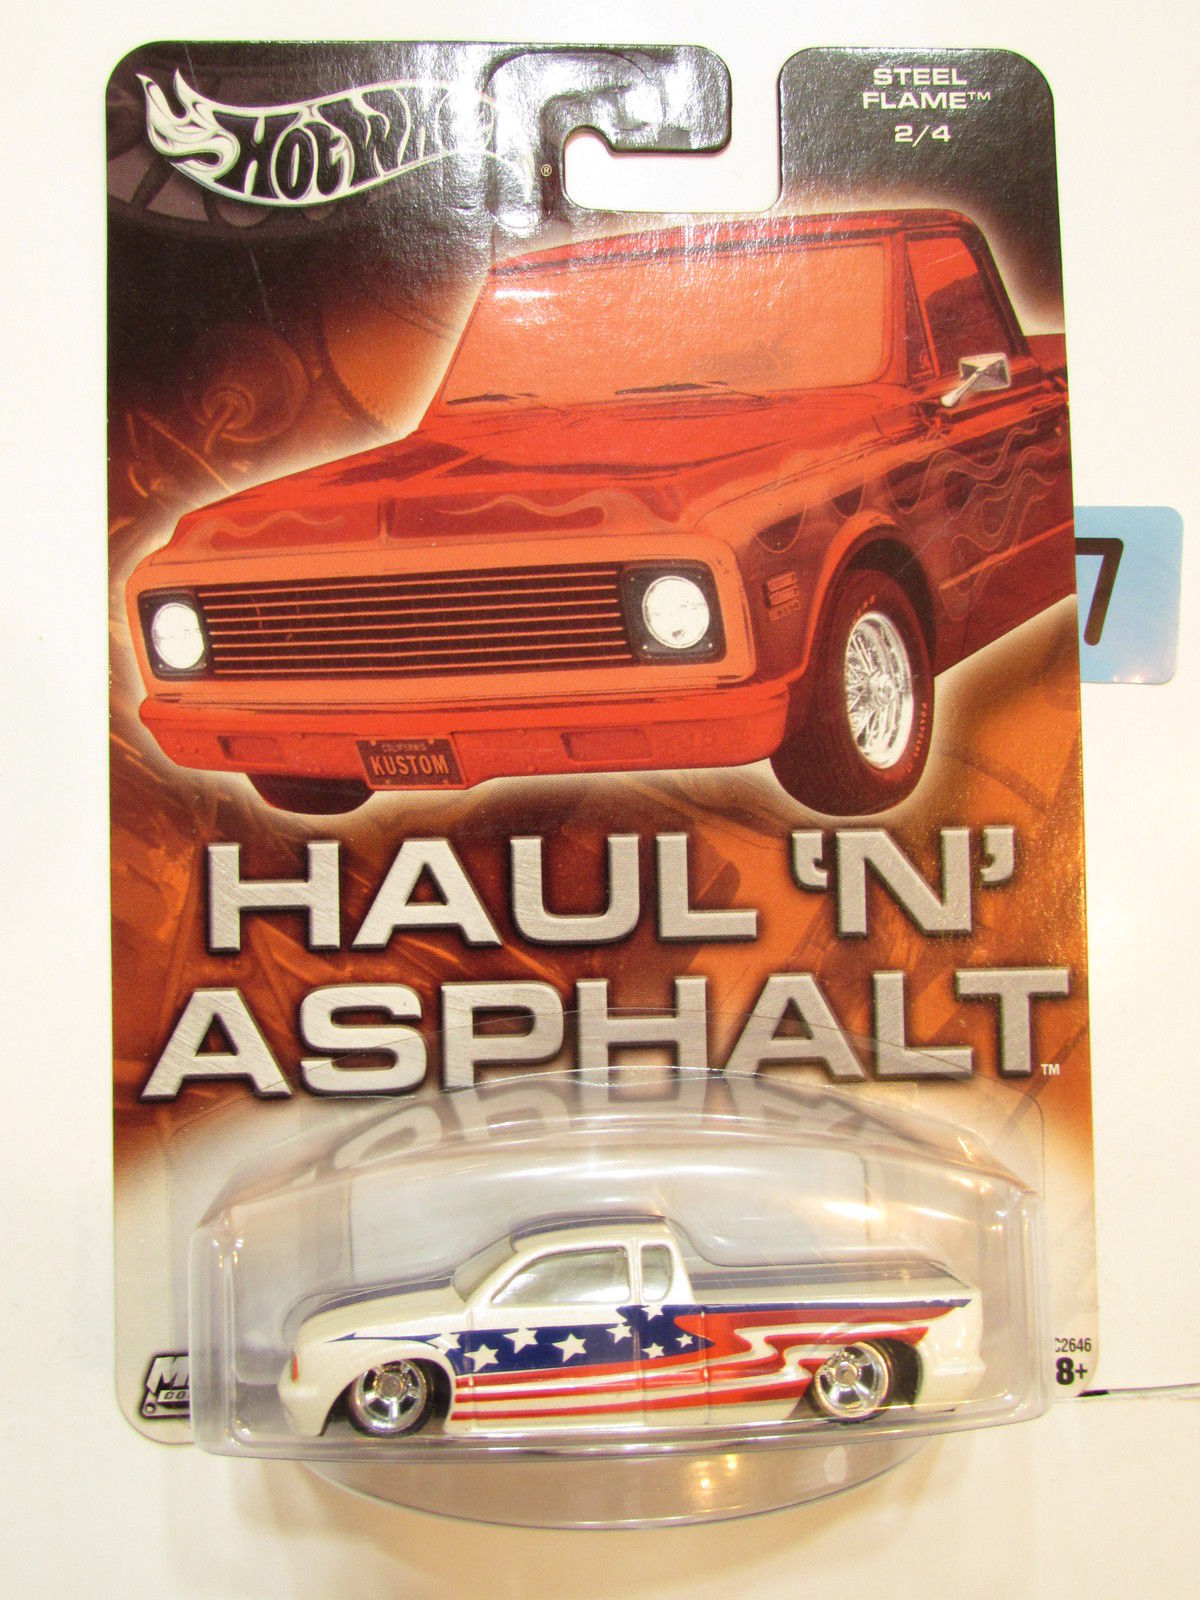 HOT WHEELS HAUL 'N' ASPHALT STEEL FLAME 2/4